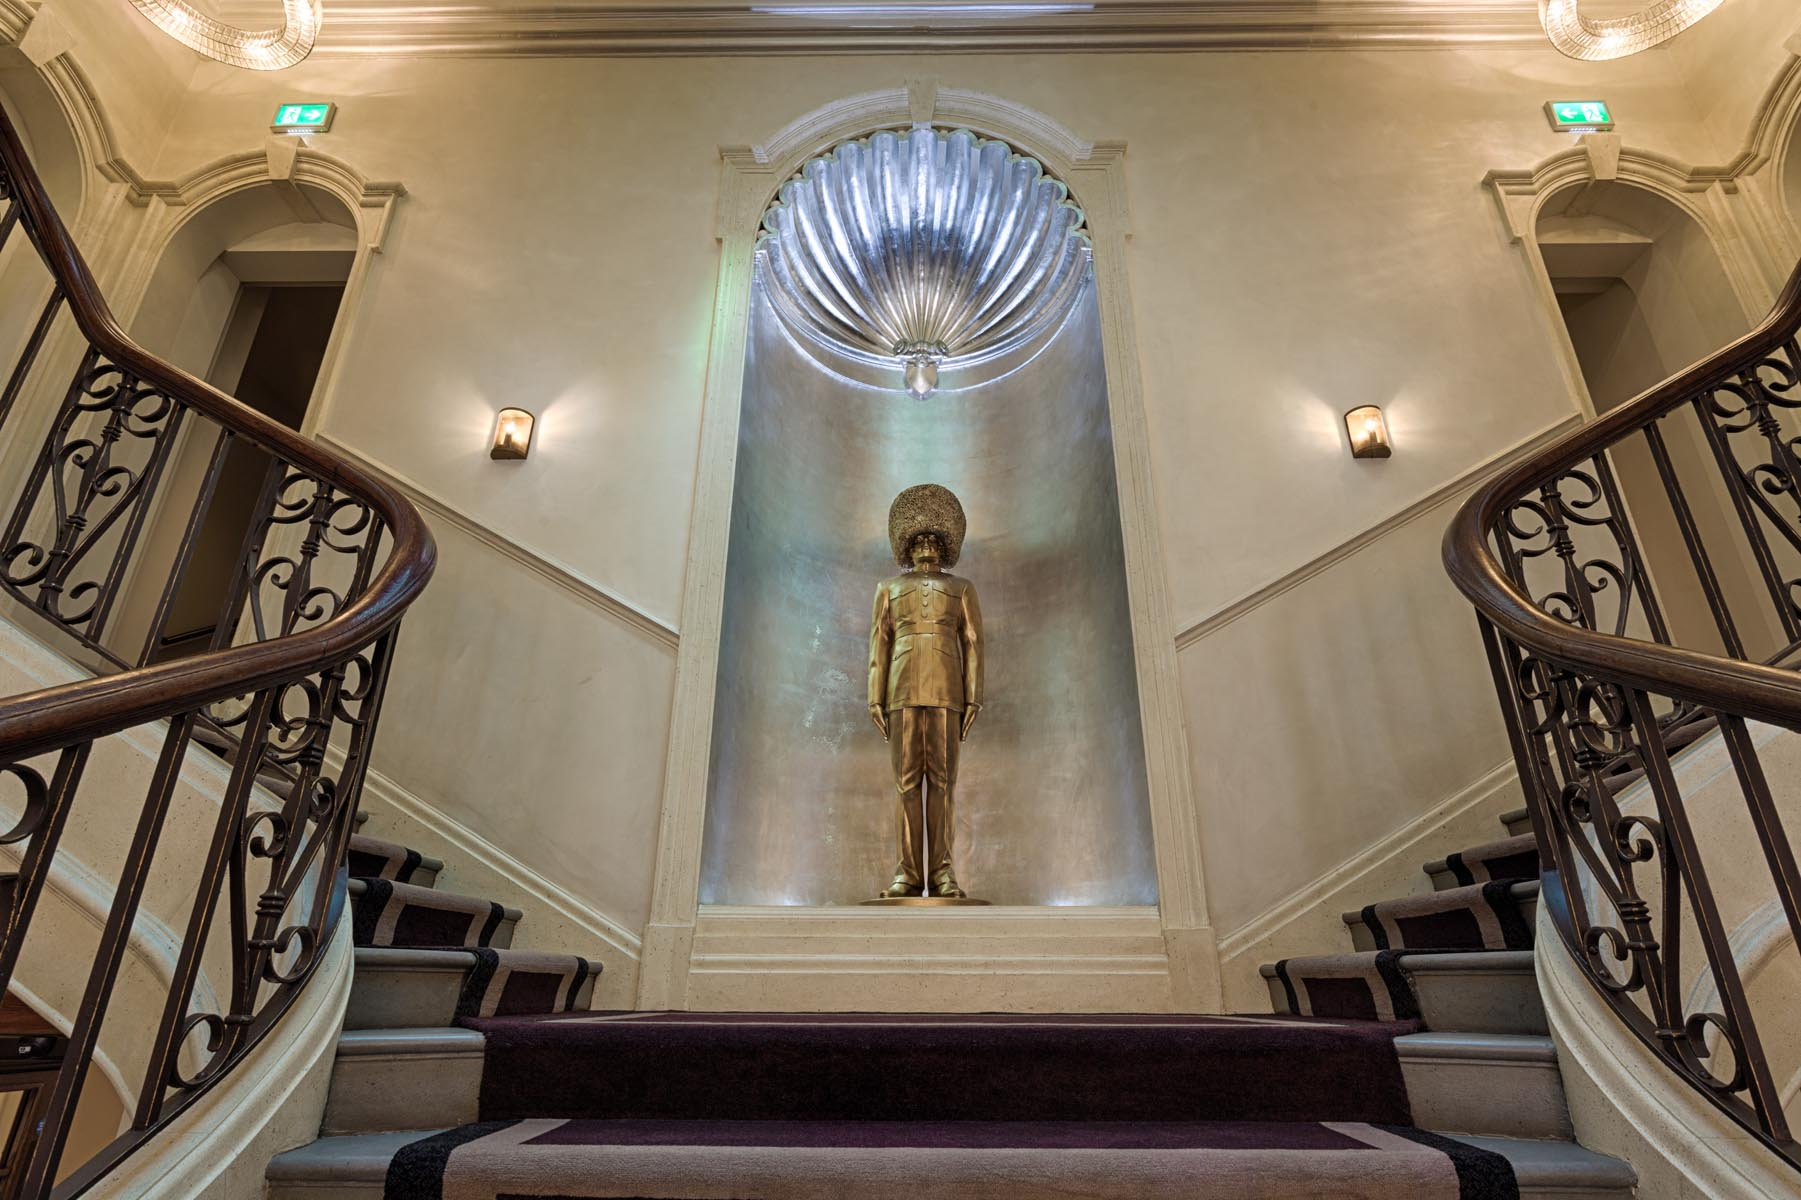 Stairwell in a hotel with shell efect and statue